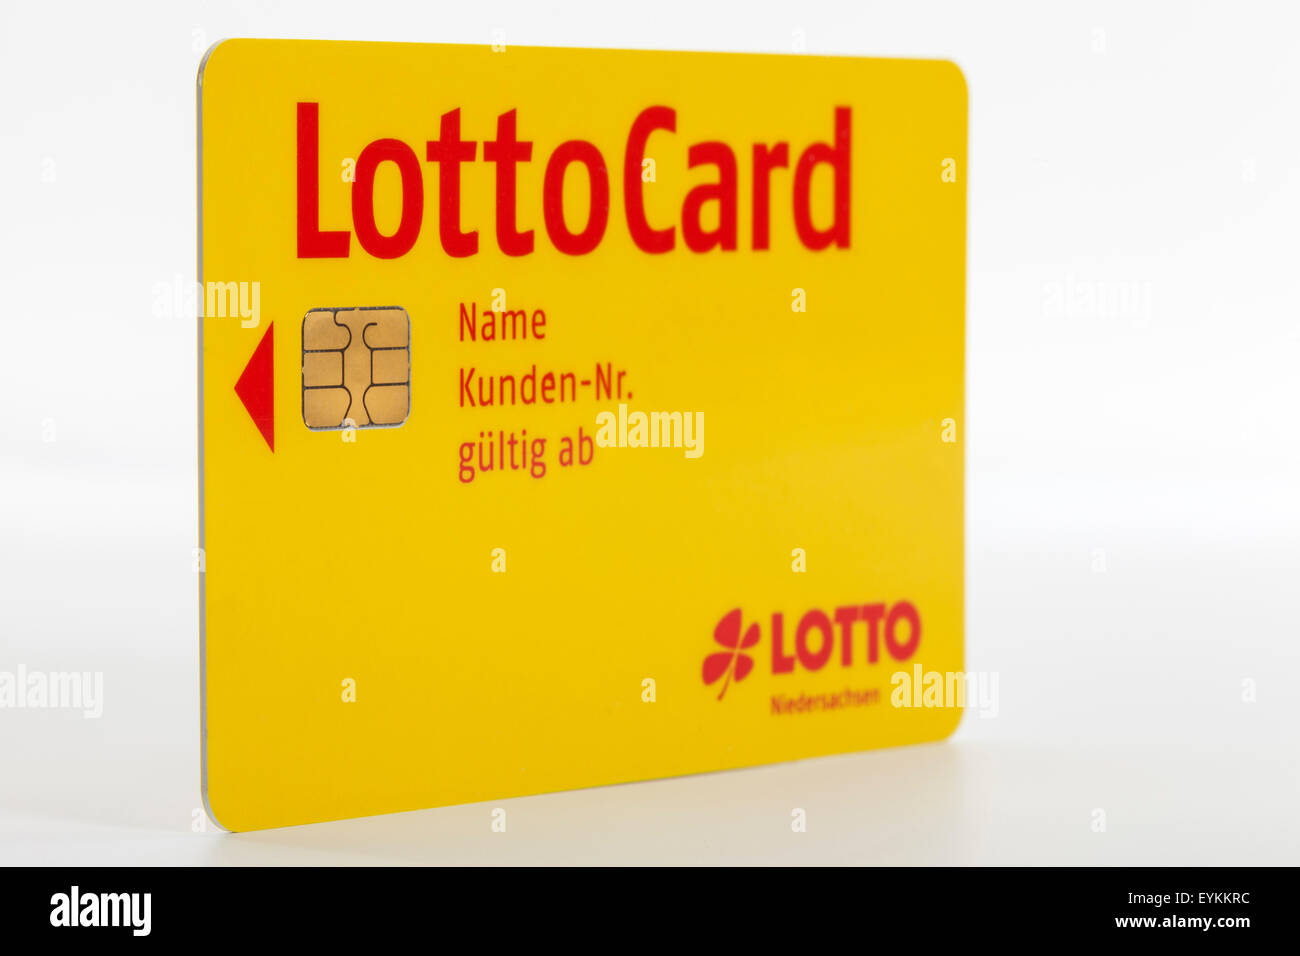 LottoCard Lower Saxony, account card, - Stock Image